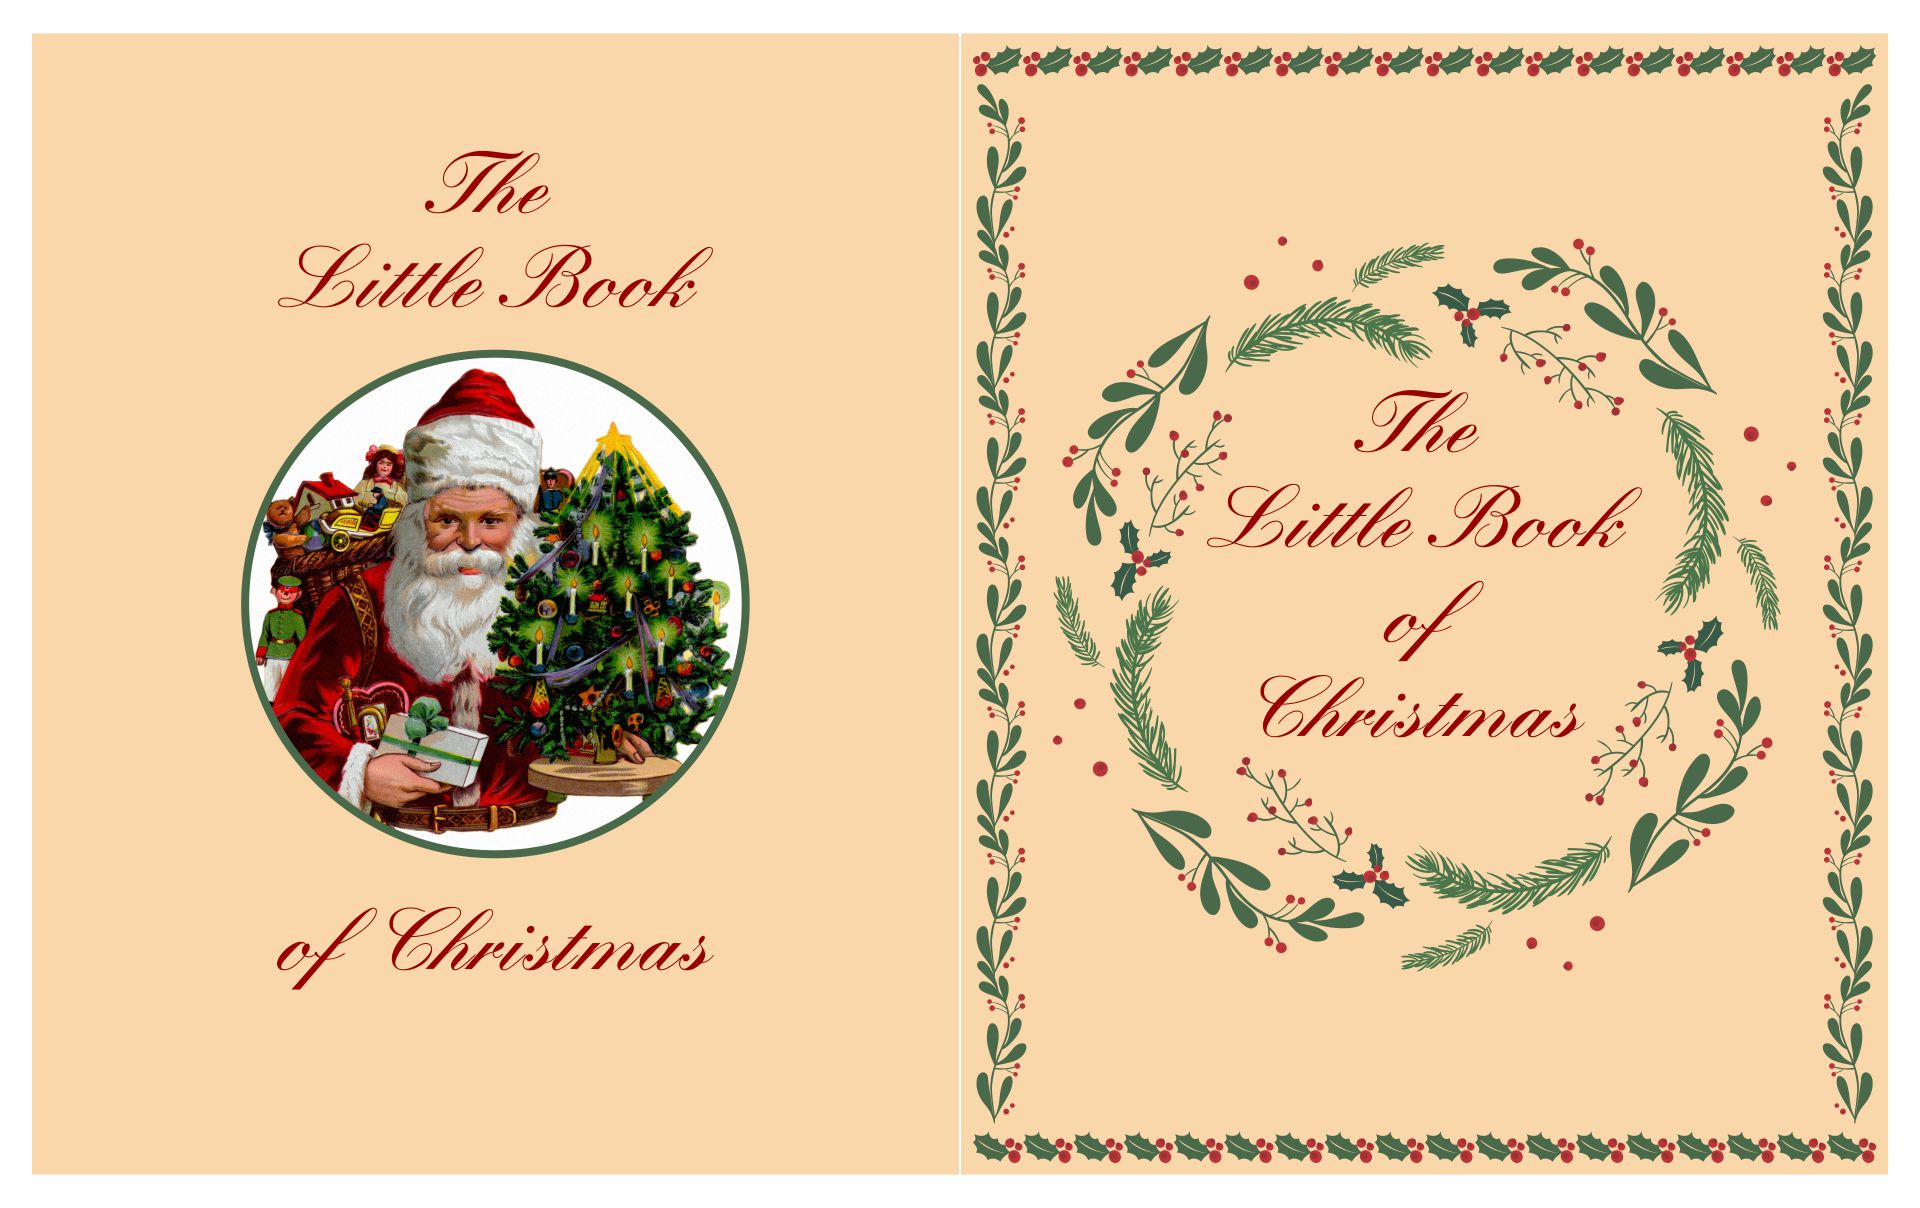 6 Images of Christmas Miniature Printable Book Covers